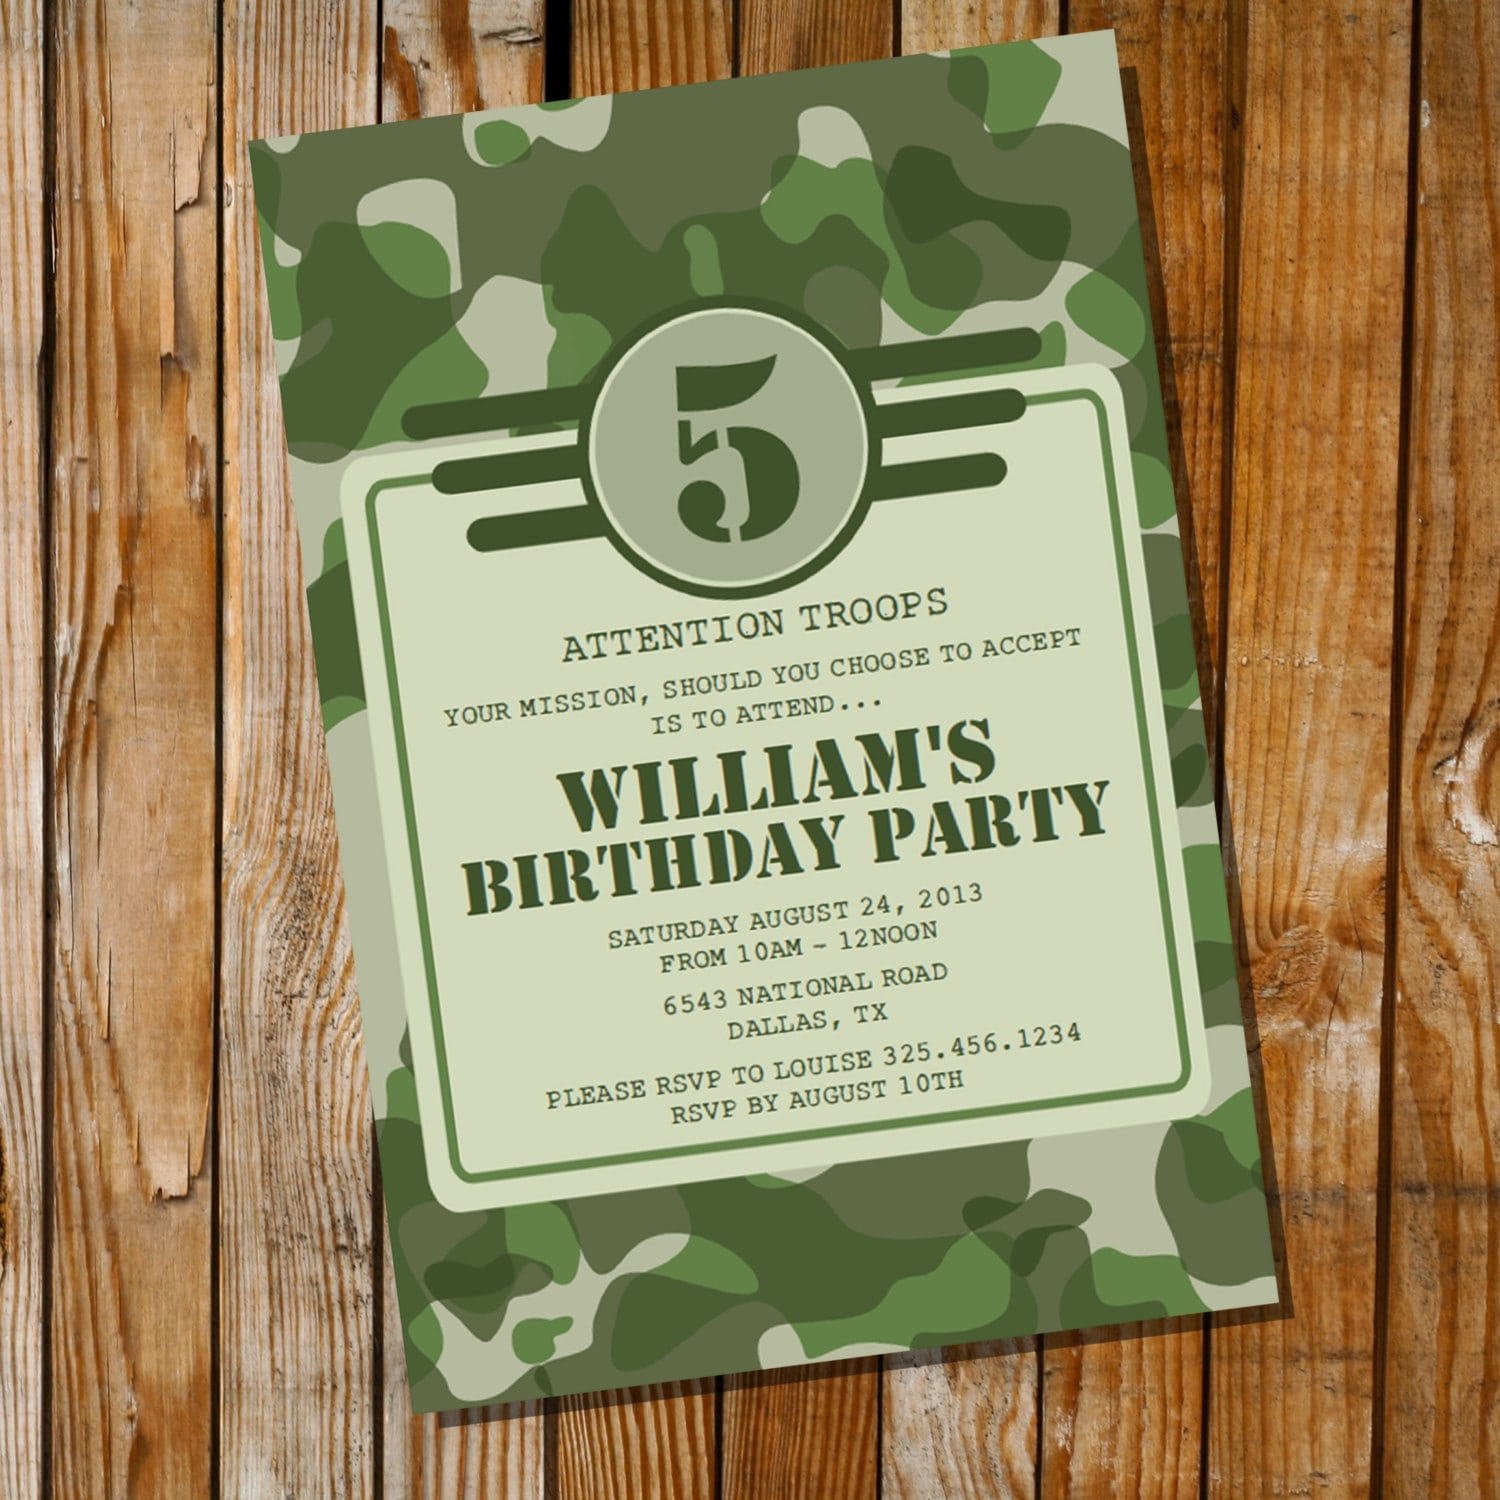 Pink Camo Party Invitations Inspirational Army Party Invitation